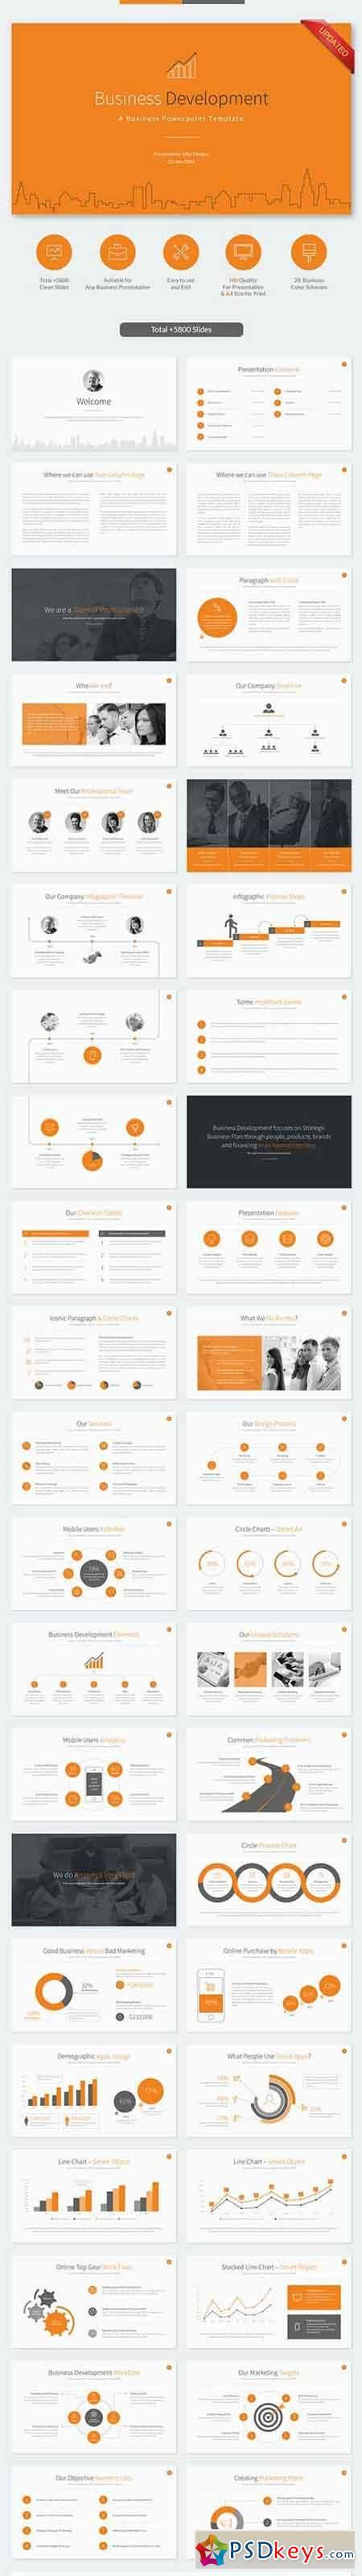 business development presentation template powerpoint 187 free photoshop vector stock image via torrent zippyshare from psdkeys